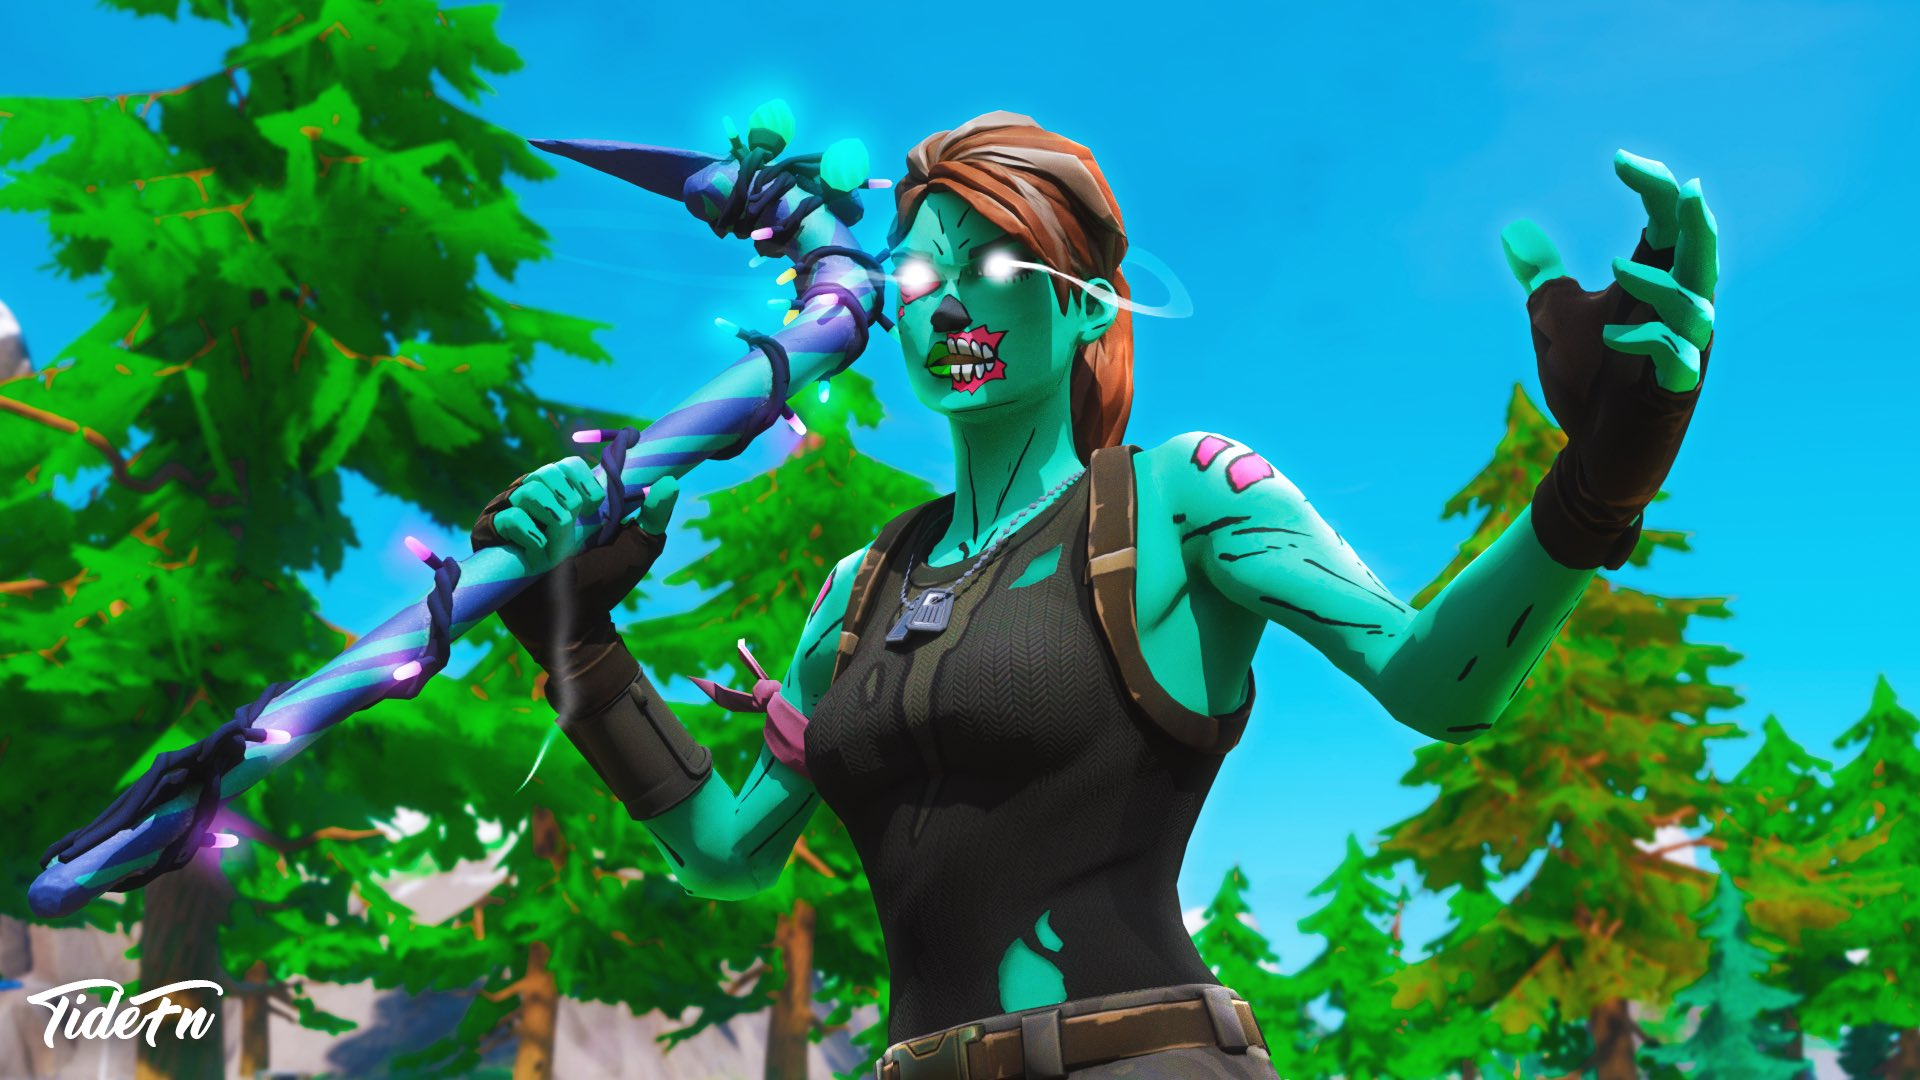 E11 Oc Tide On Twitter Ghoul Trooper Free To Use But Tag Hd Unwatermarked At 80 Likes